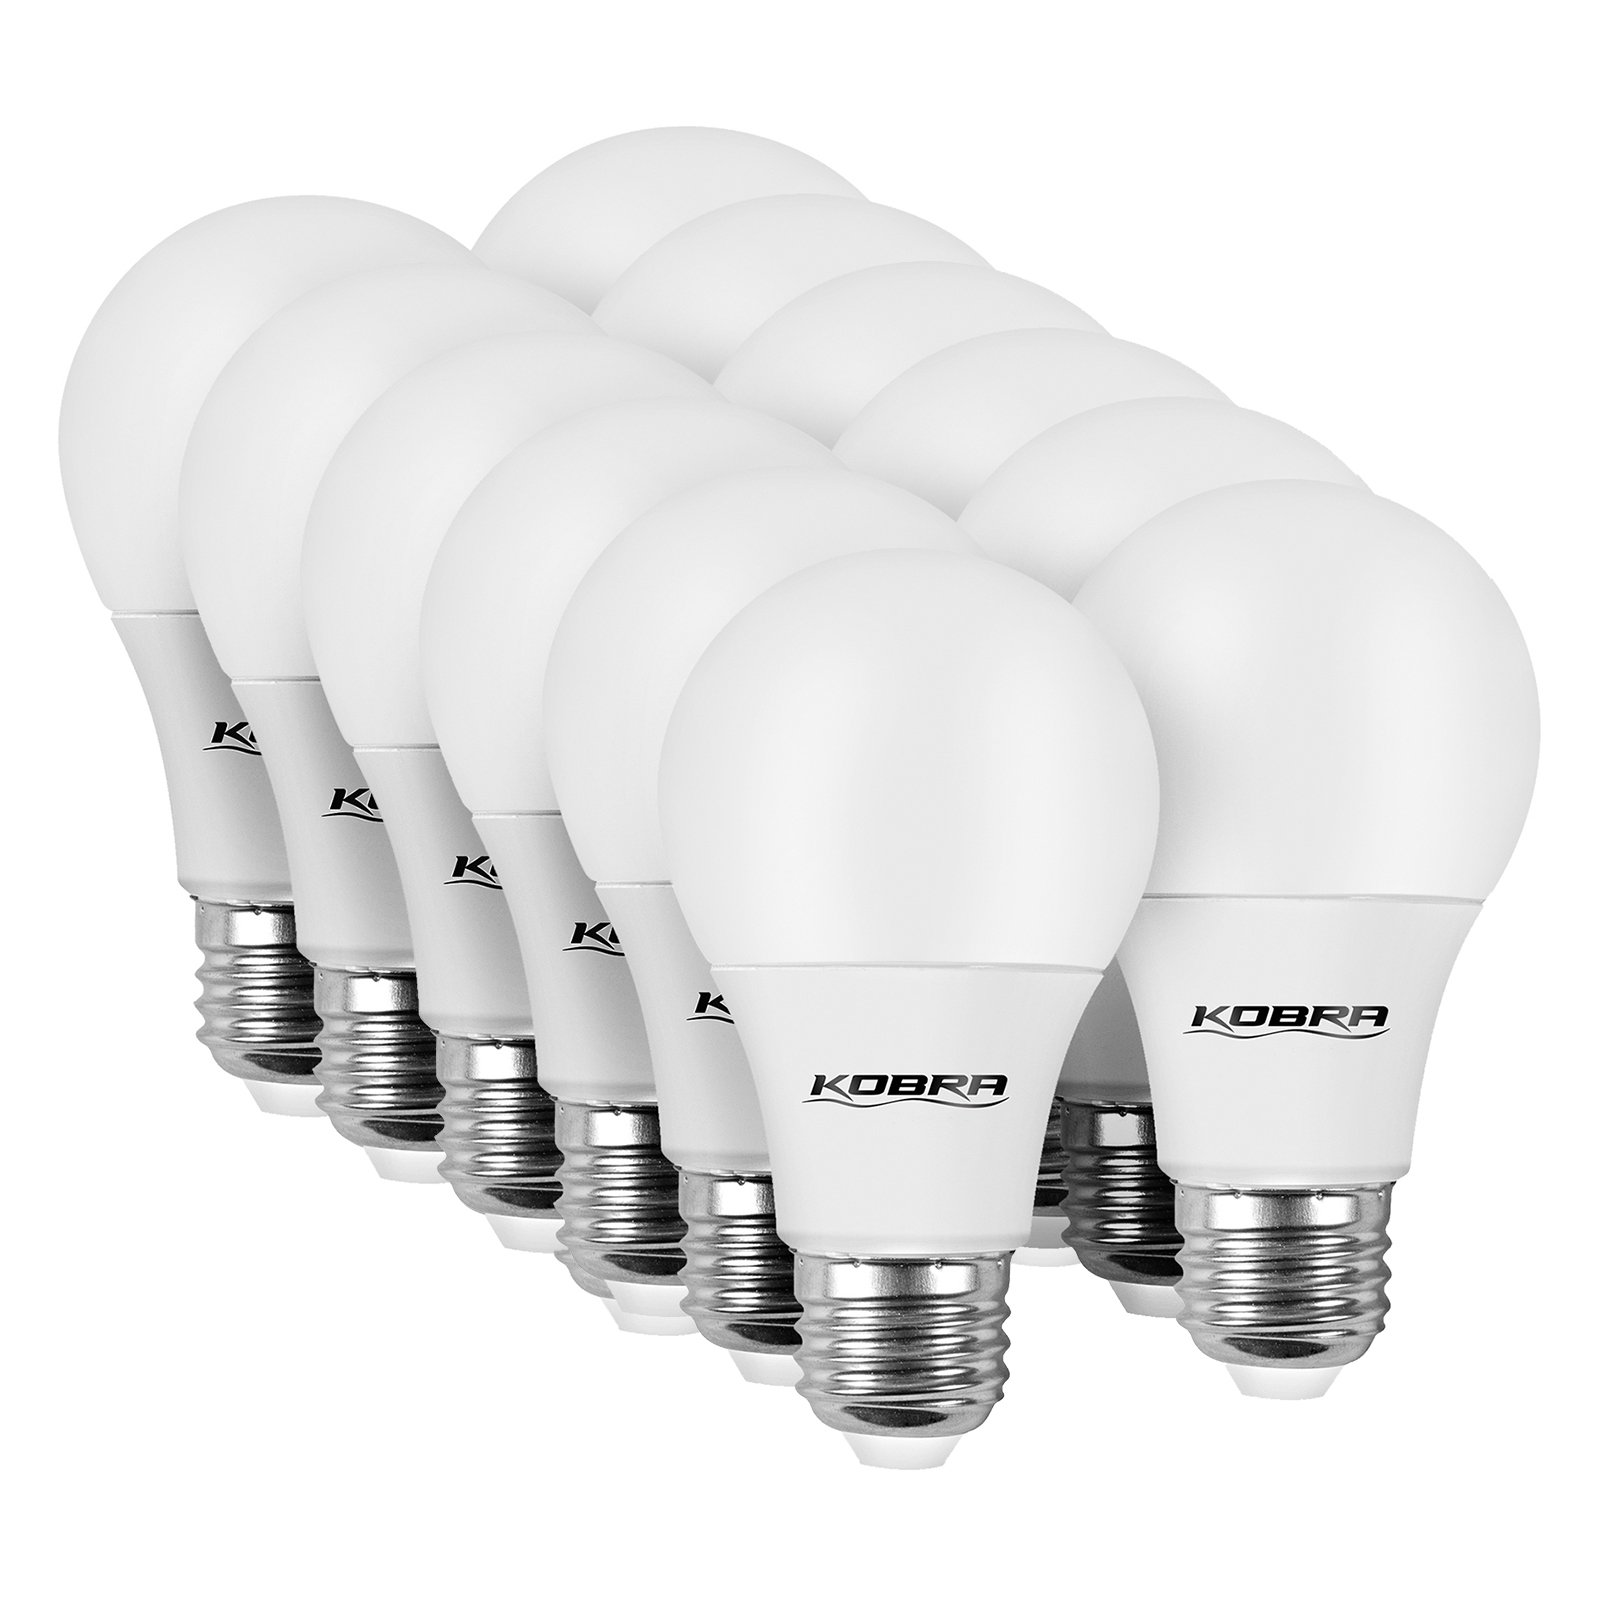 KOBRA [12-Pack] LED Light Bulbs - Dimmable 7W (60 Watt Equivalent) A19 Soft White Bulb [3000K] E26 Base